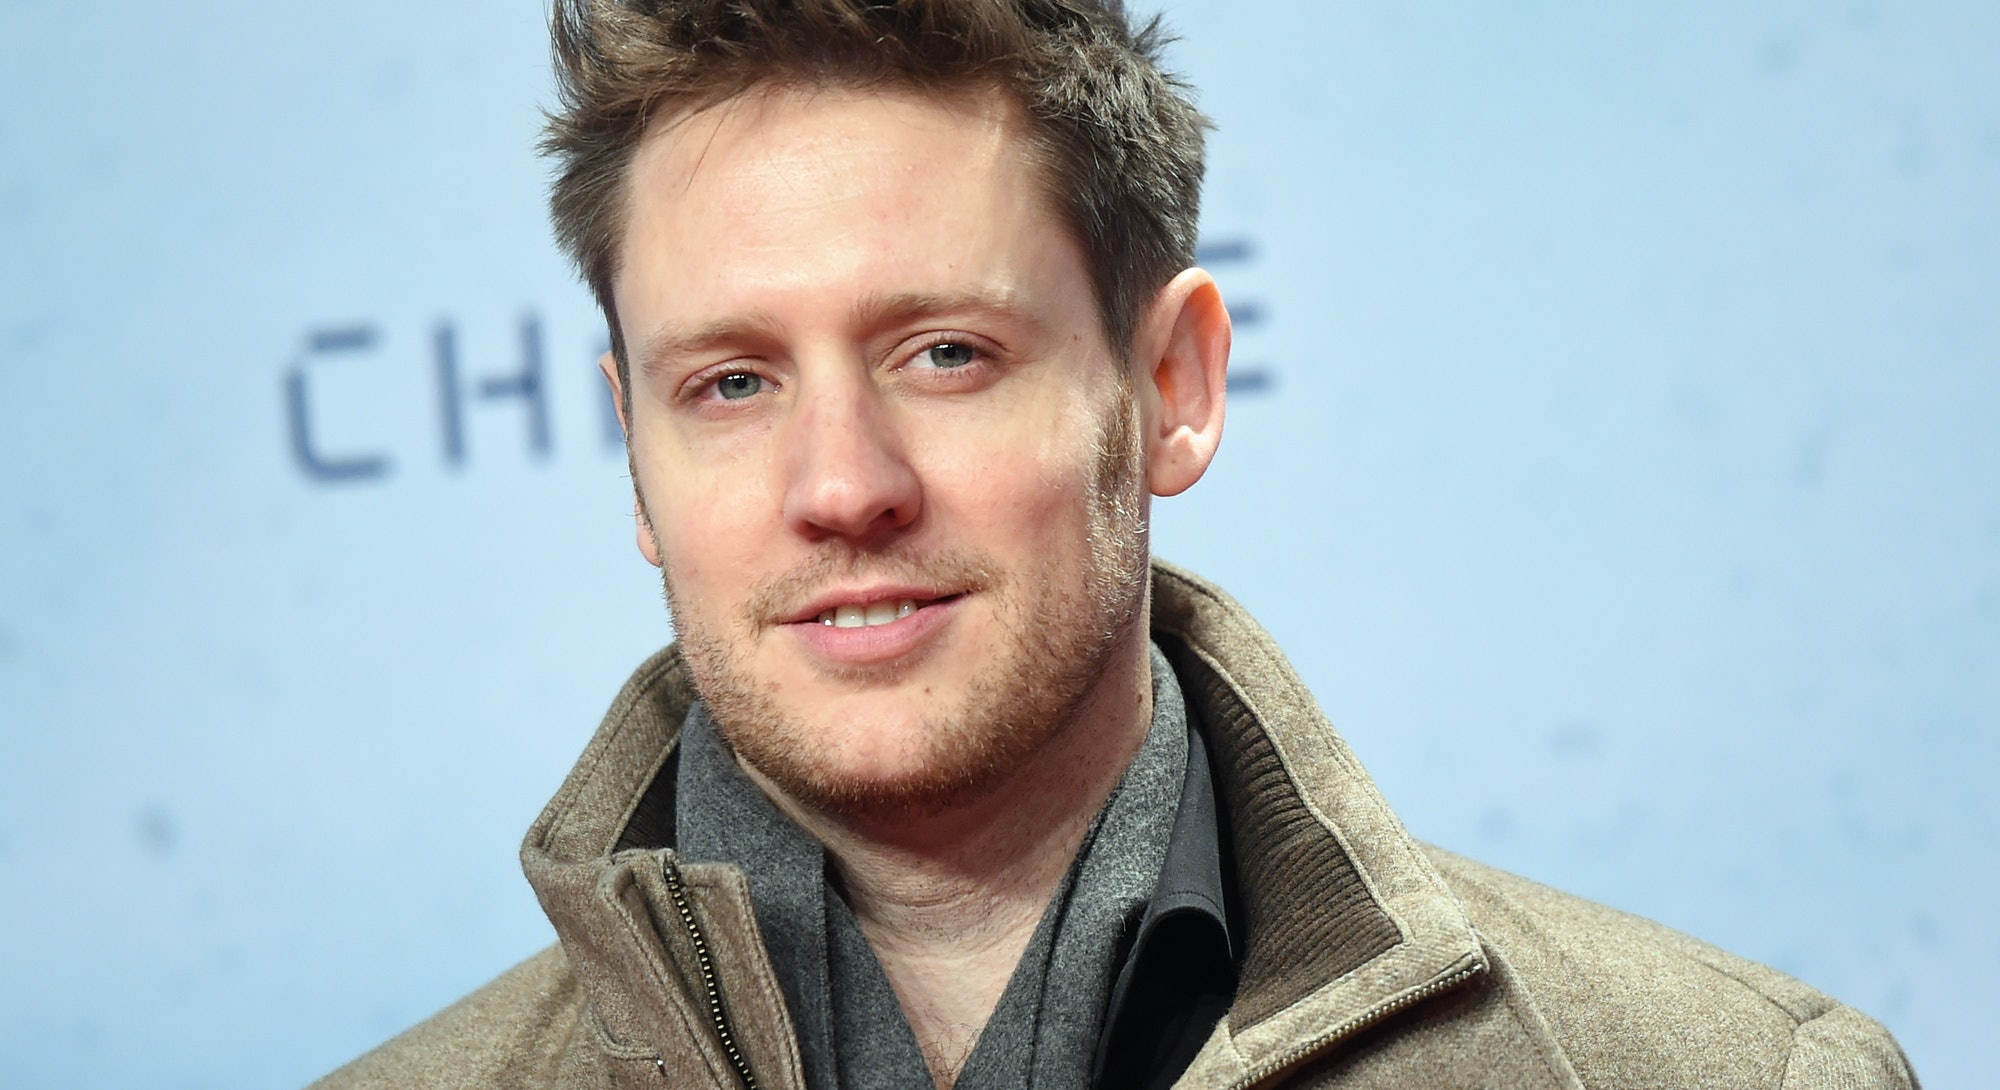 South African director Neill Blomkamp attends the fan event for his new film 'Chappie' in Berlin, Ge...